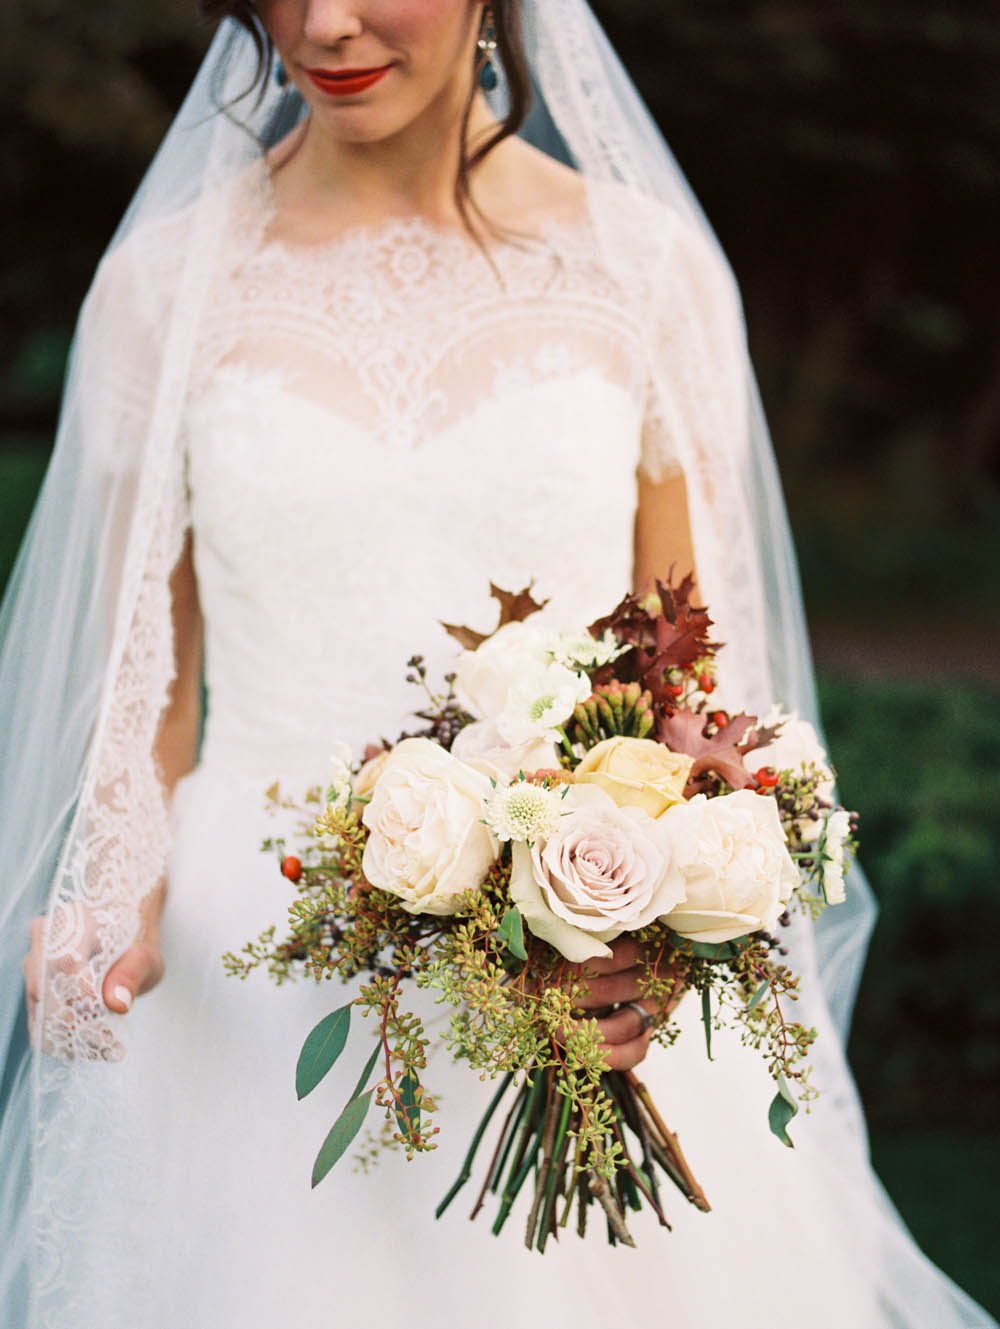 Whimsical Bridal Bouquet